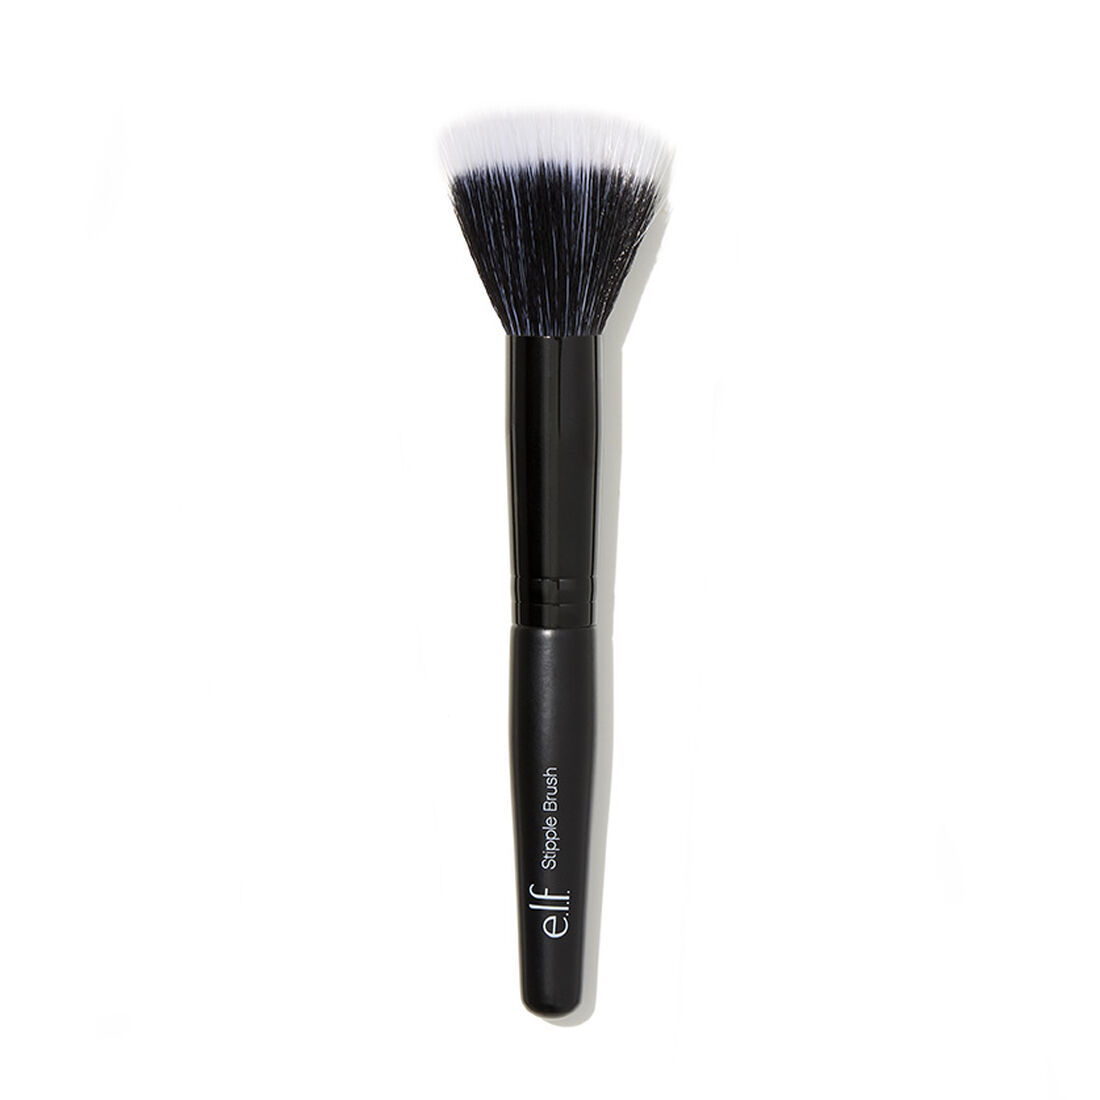 E.l.f Cosmetics - Stipple Brush